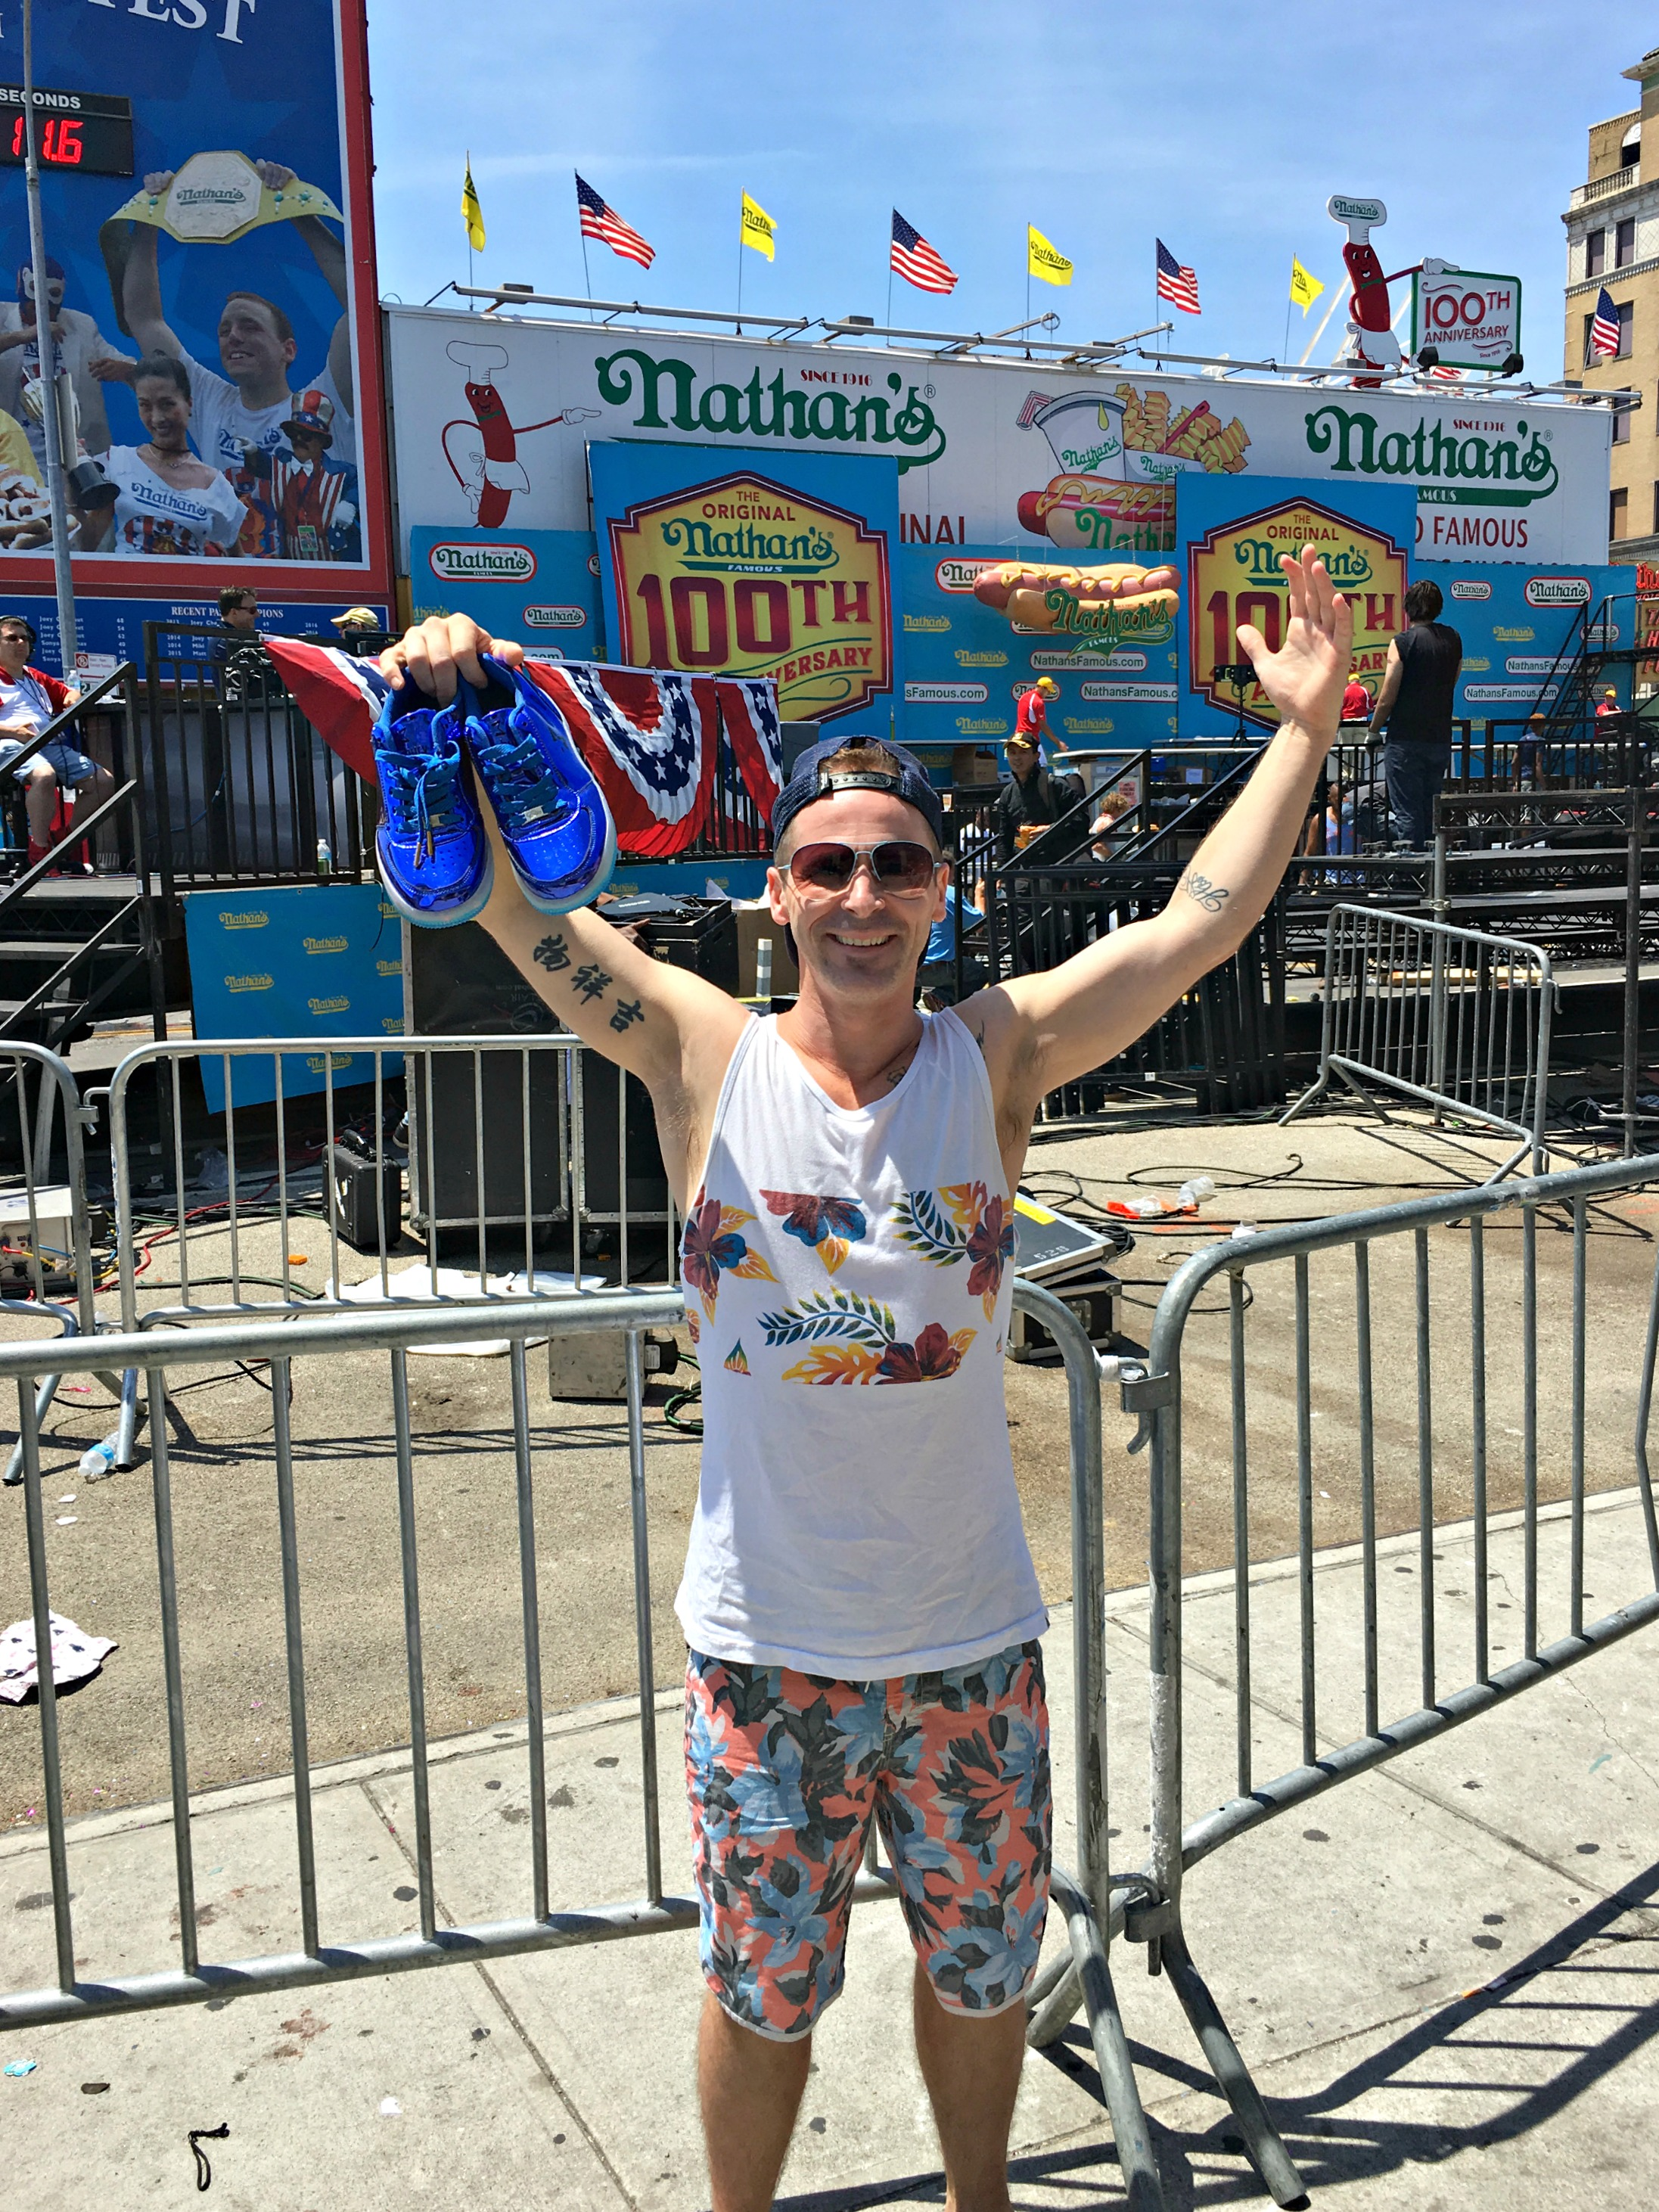 nathan's hot dog eating contest stephon marbury shoes